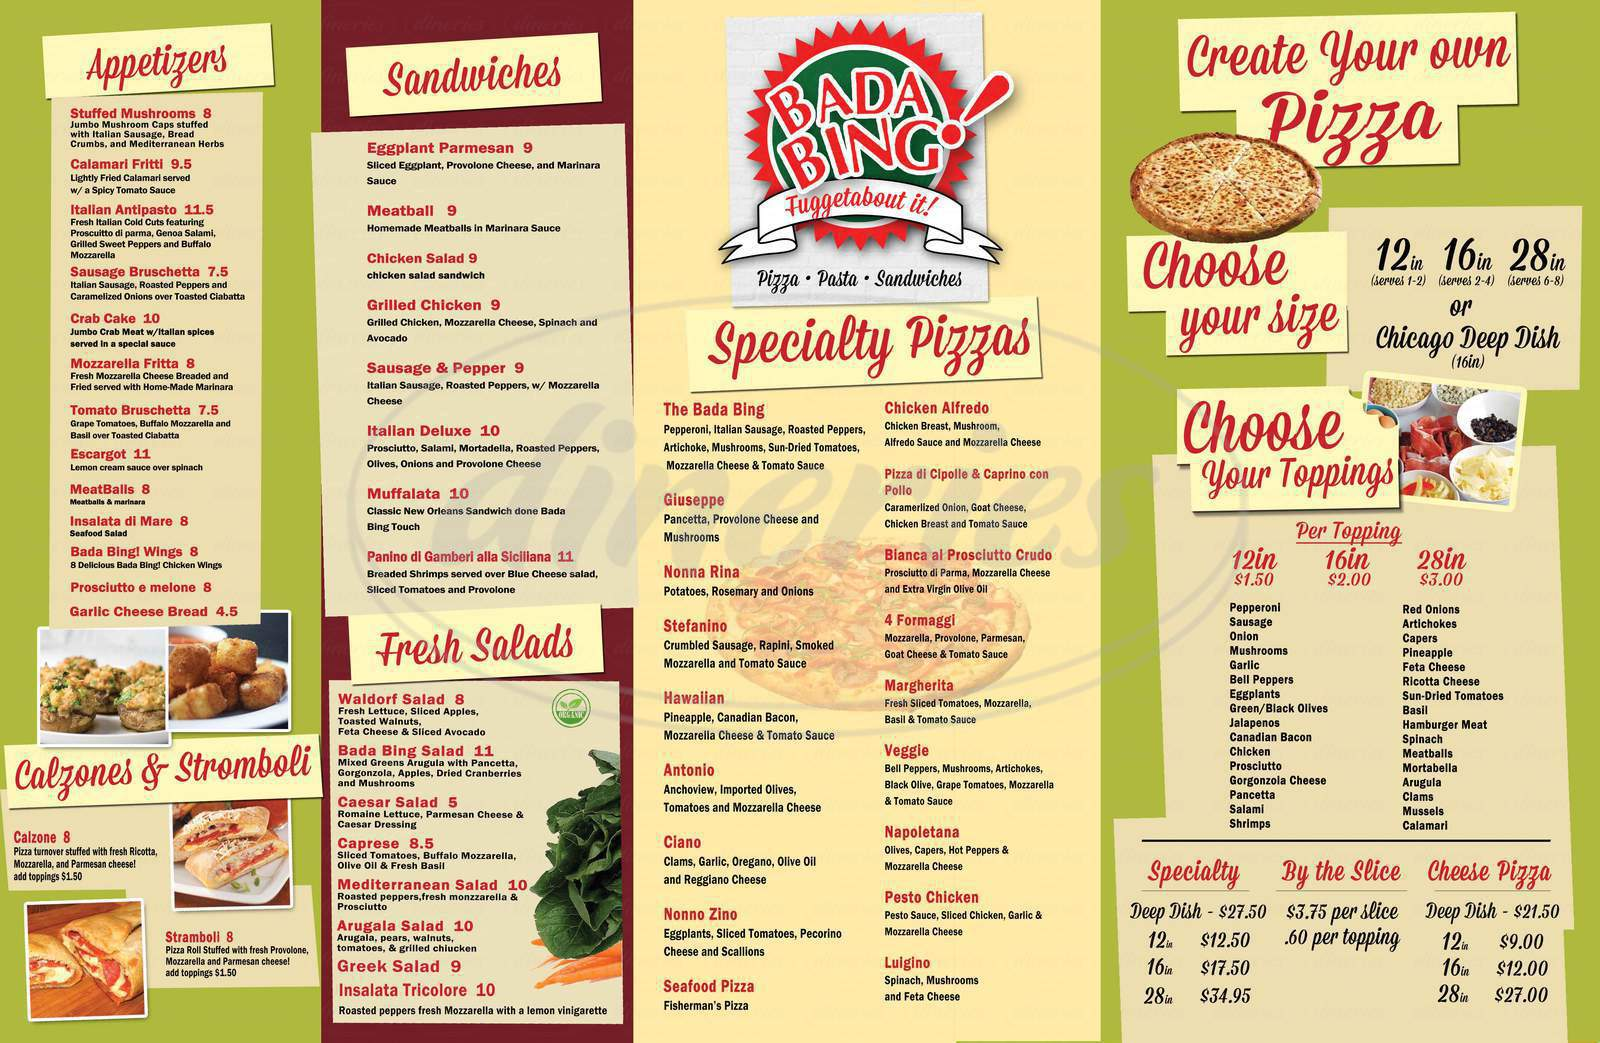 menu for Bada Bing Pizzeria